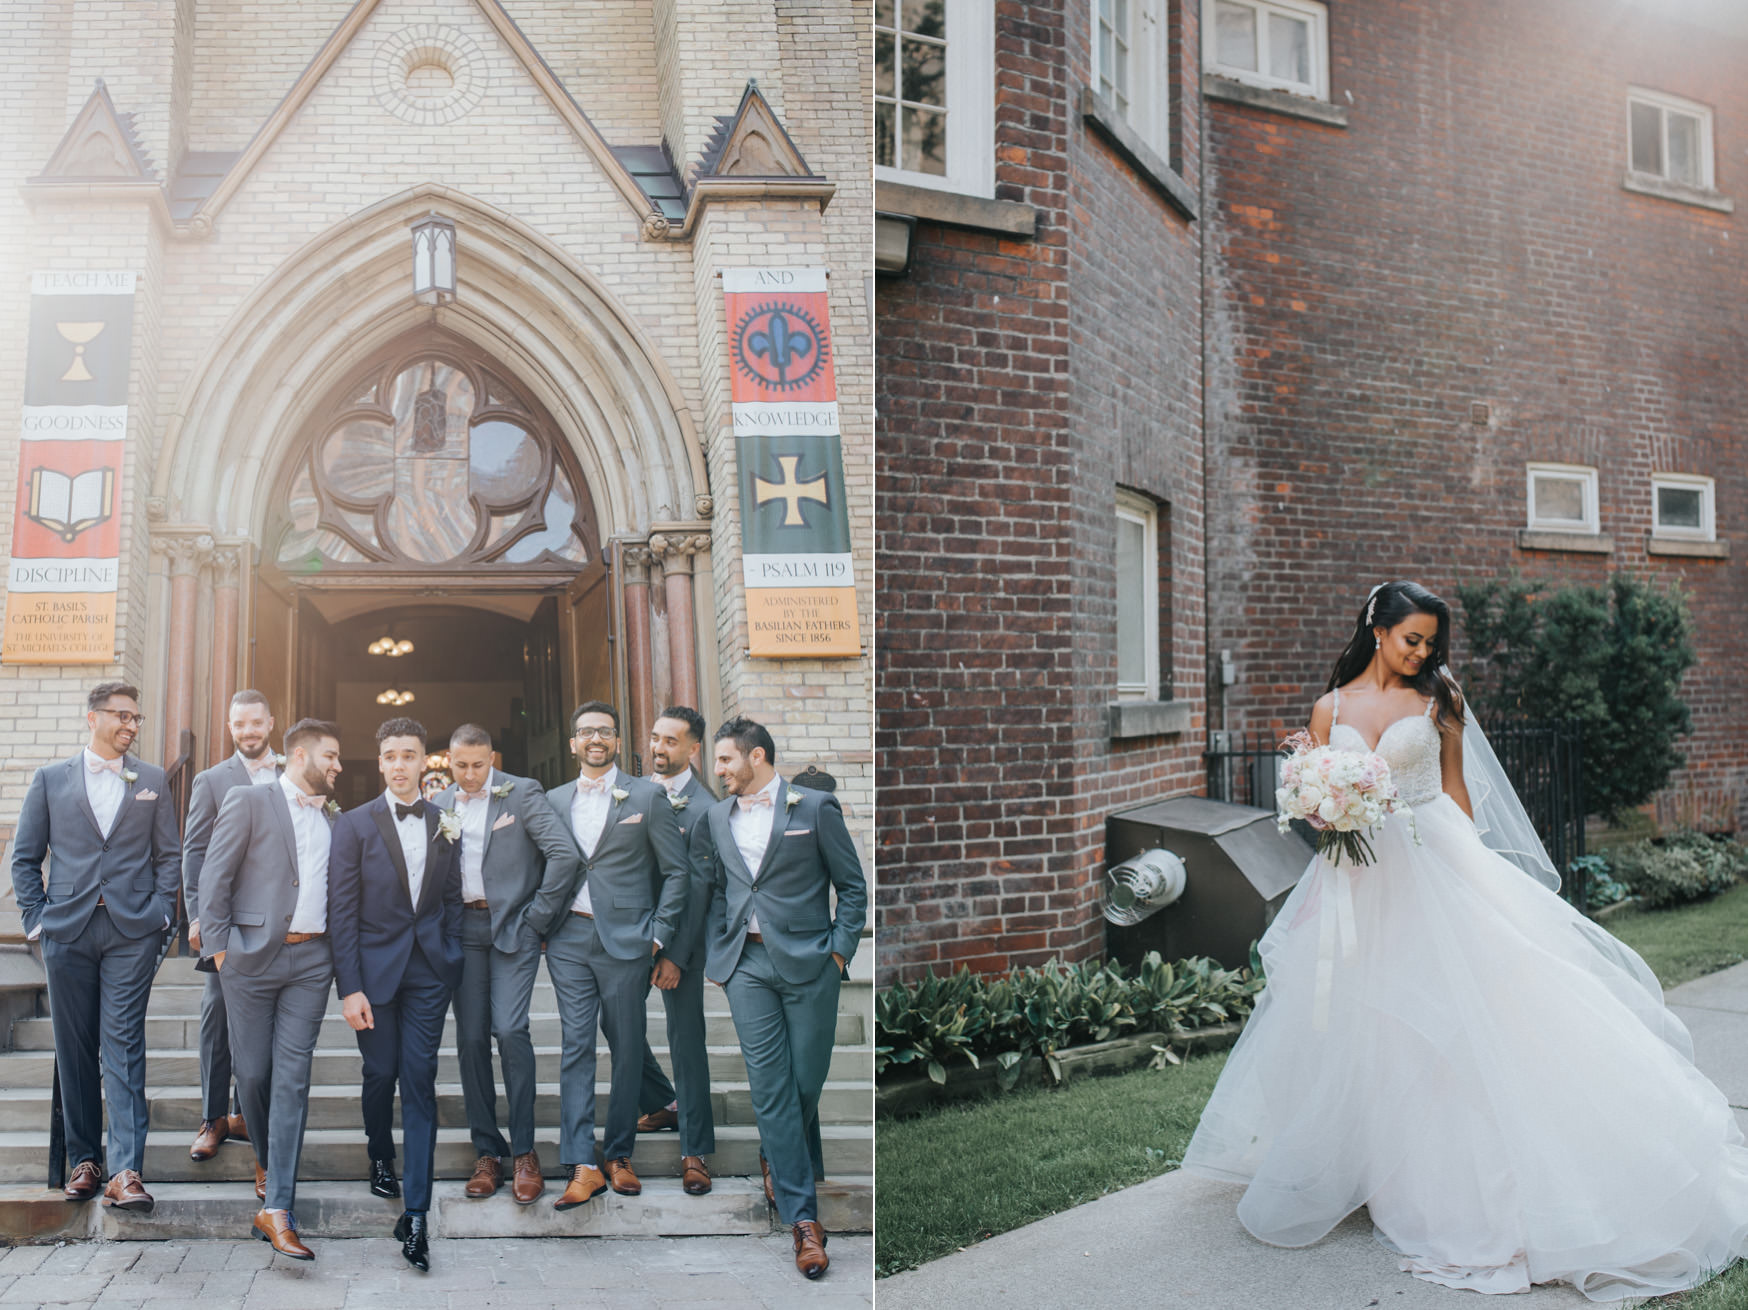 Toronto Victoria University Wedding Photo